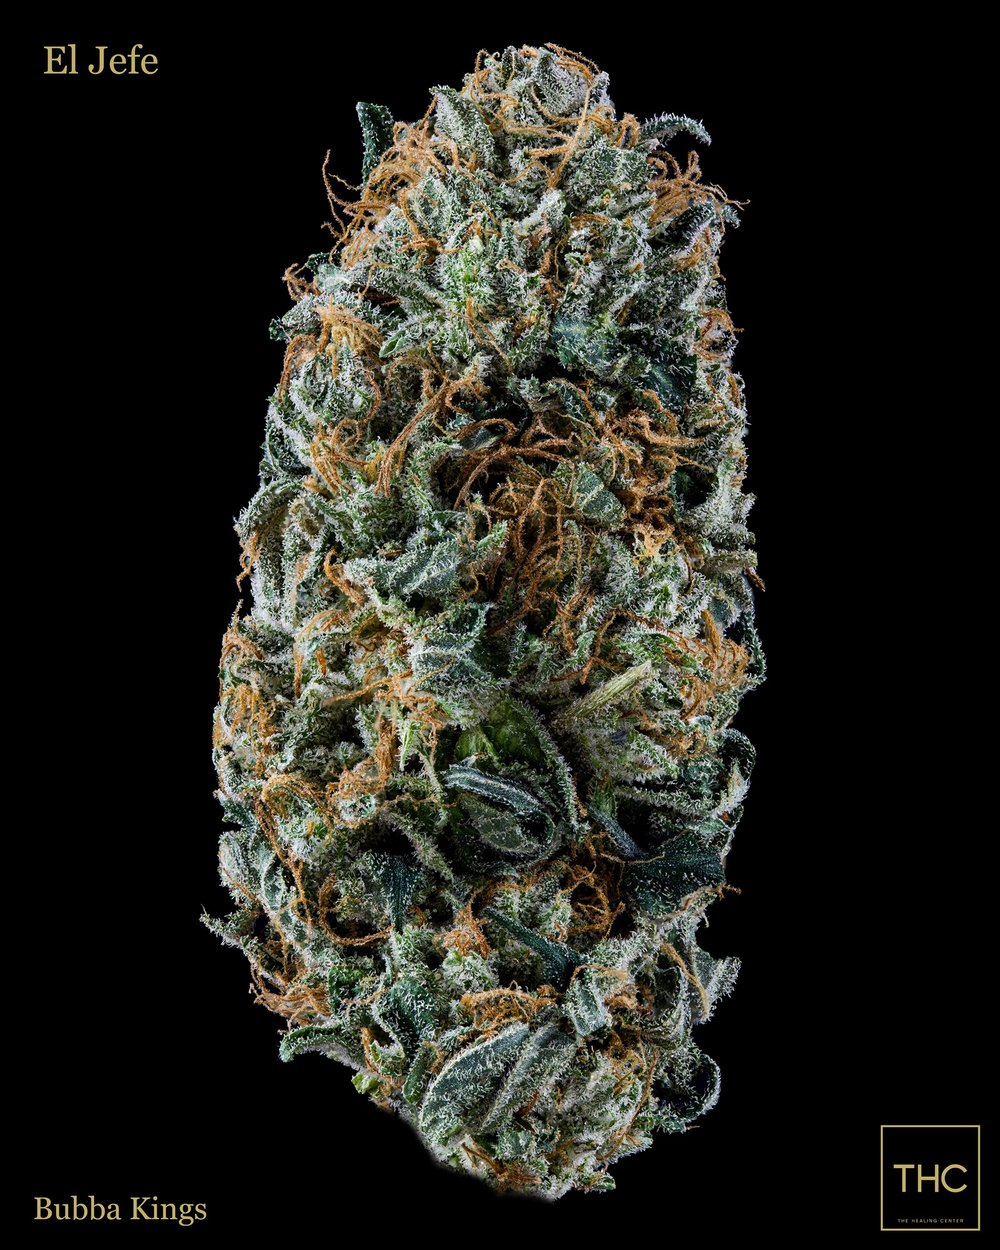 El Jefe Bubba Kings THC b.jpg